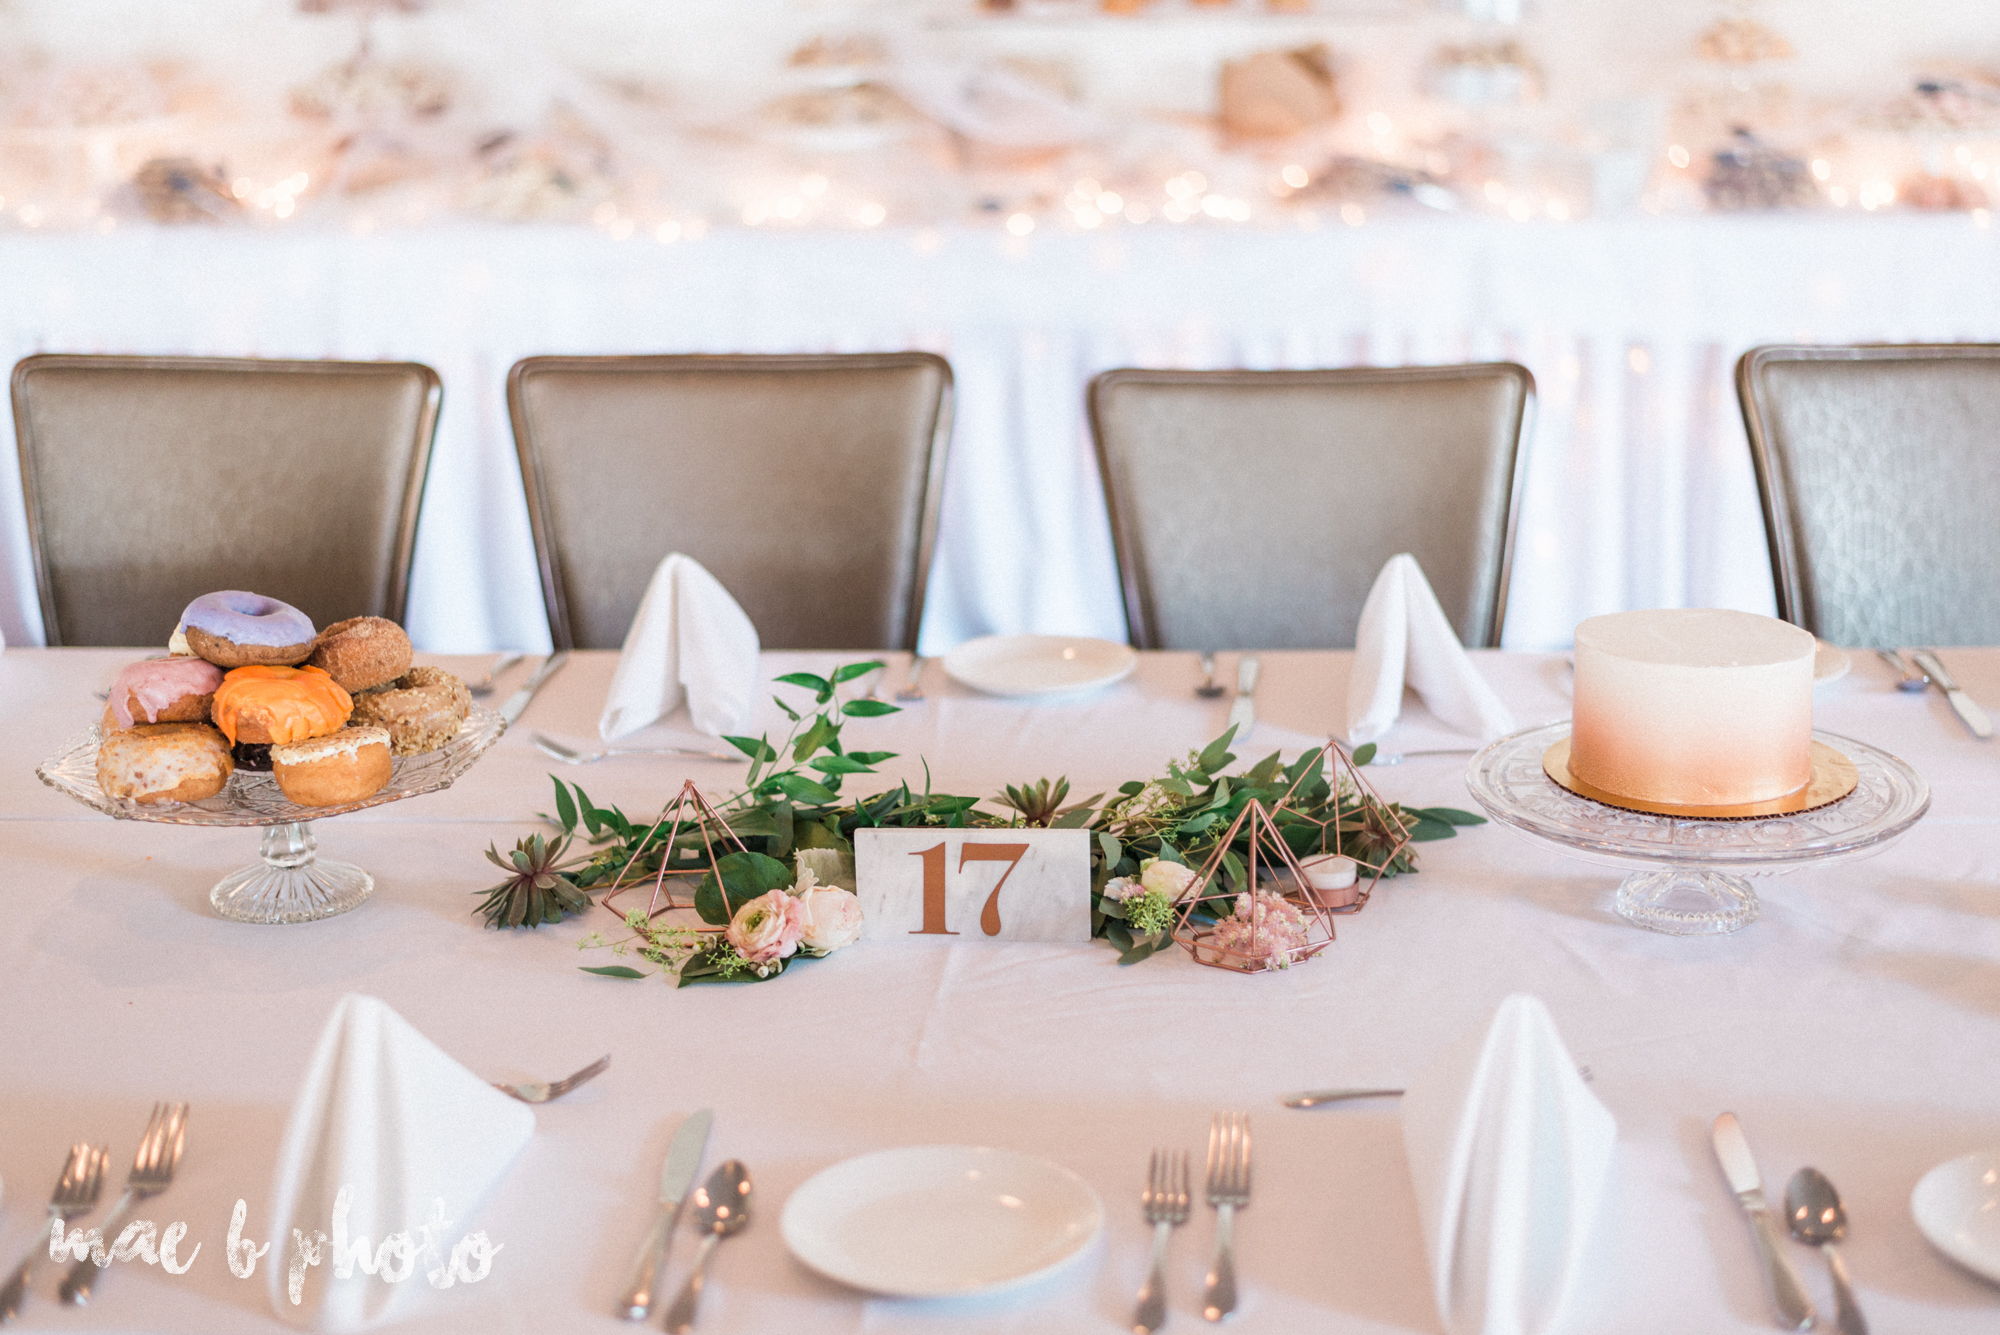 emily and michael's industrial chic summer country club wedding at the lake club in poland ohio photographed by cleveland wedding photographer mae b photo-88.jpg